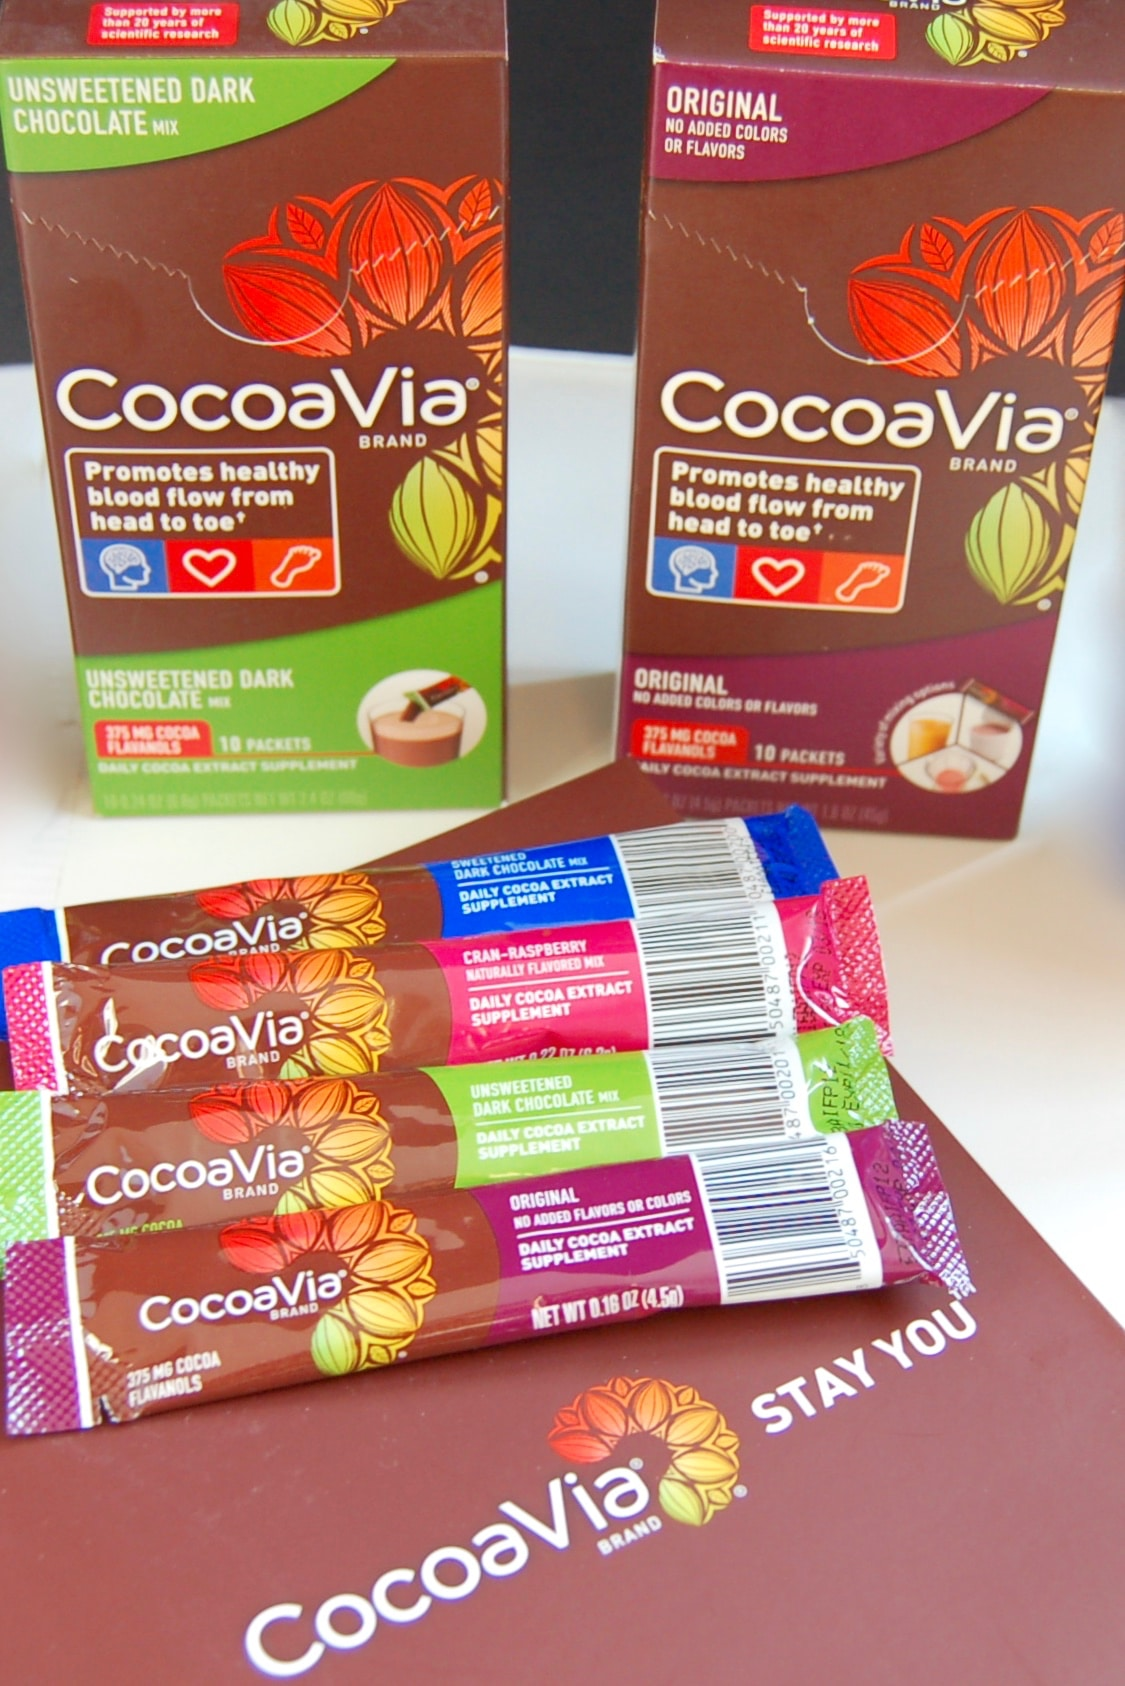 One CocoaVia® powdered stick pack contains 375 mg cocoa flavanols - the beneficial plant-based nutrients found naturally in cocoa.